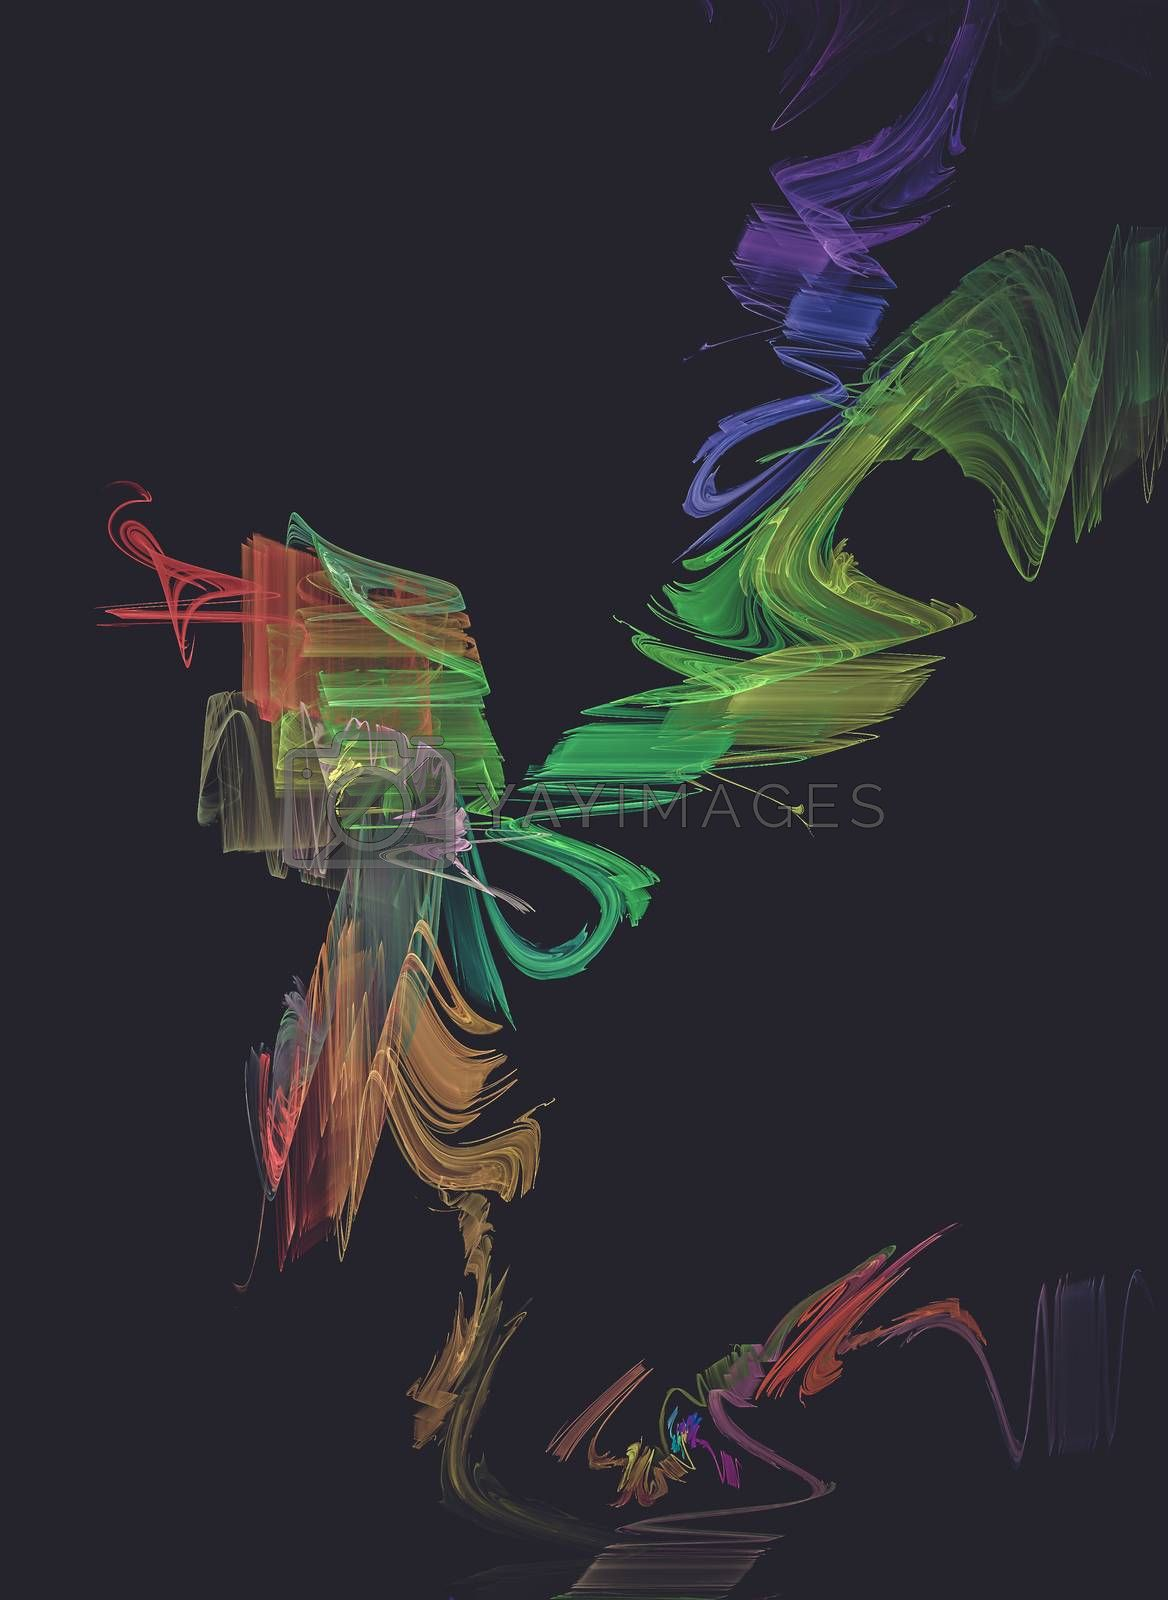 Technology, Creative design background, fractal styles with color design